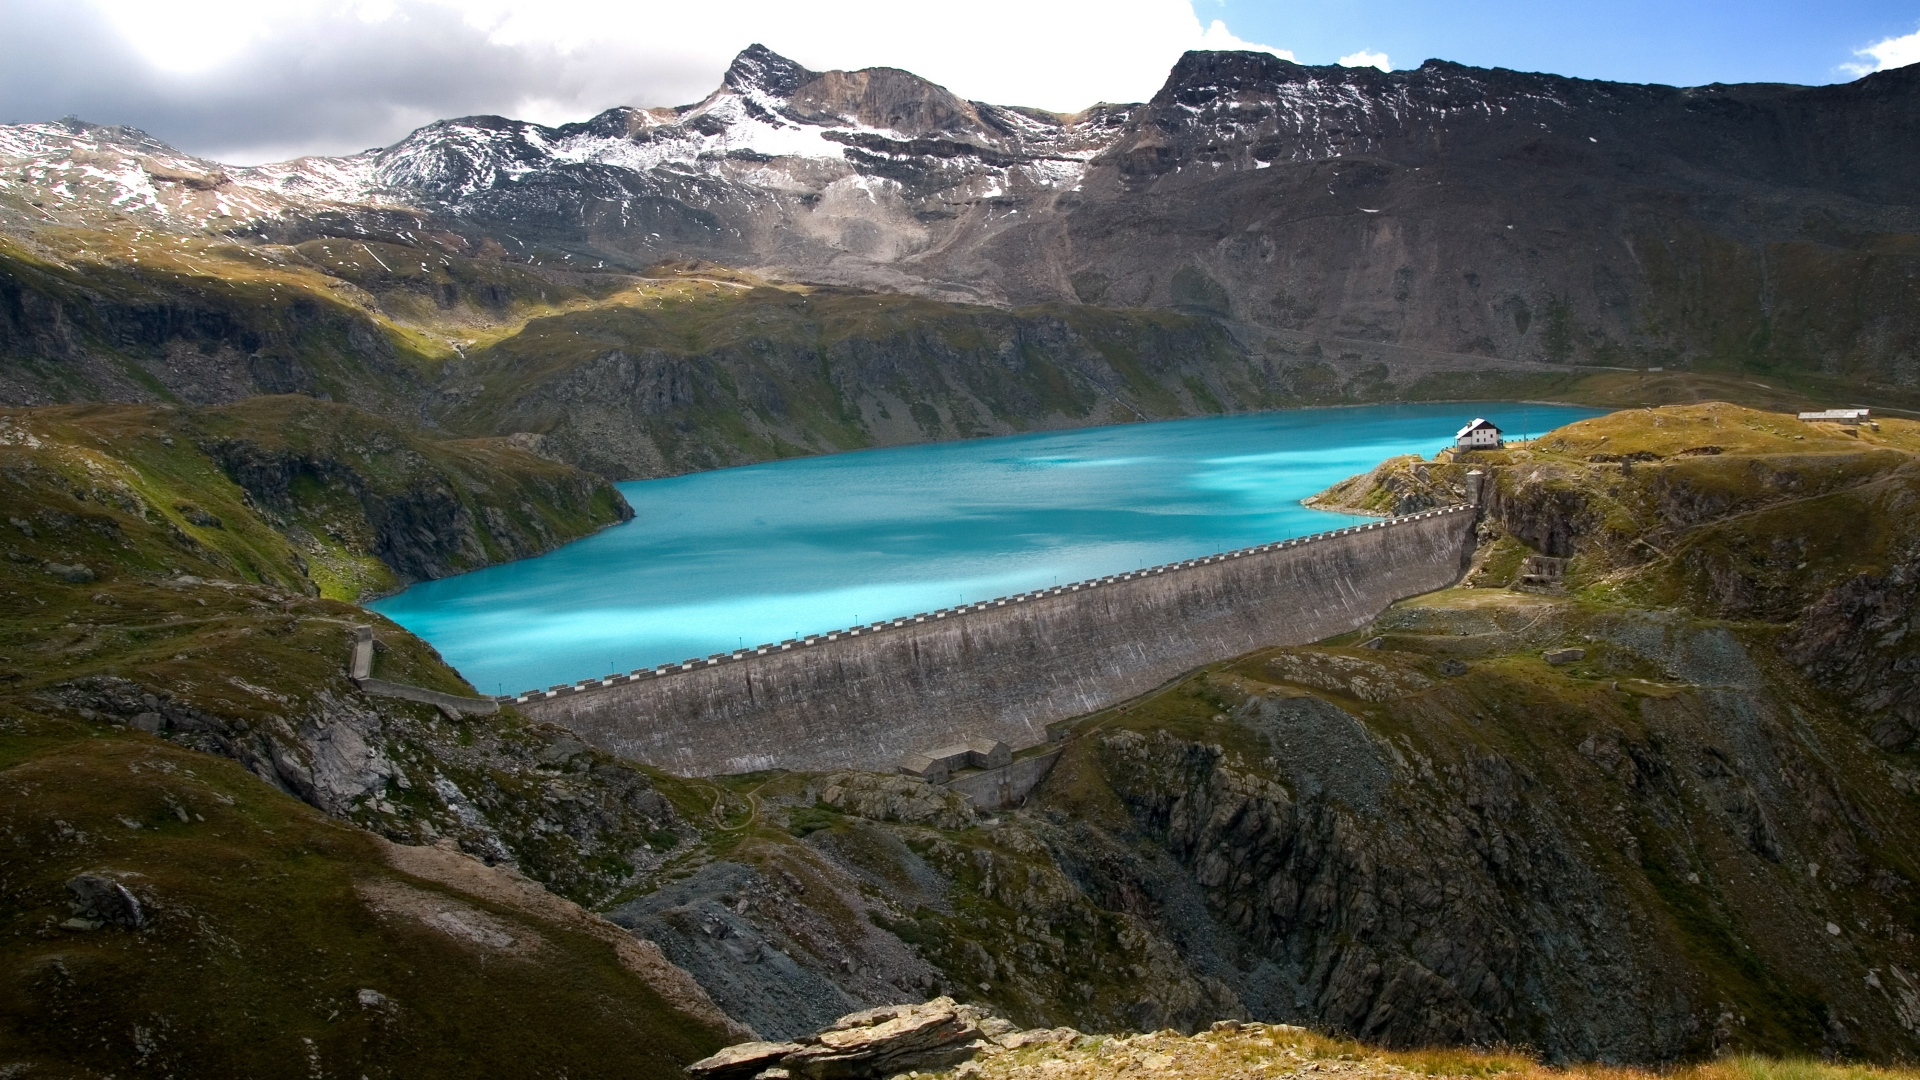 Dam full hd wallpaper and background image 1920x1080 - Hd wilderness wallpapers ...